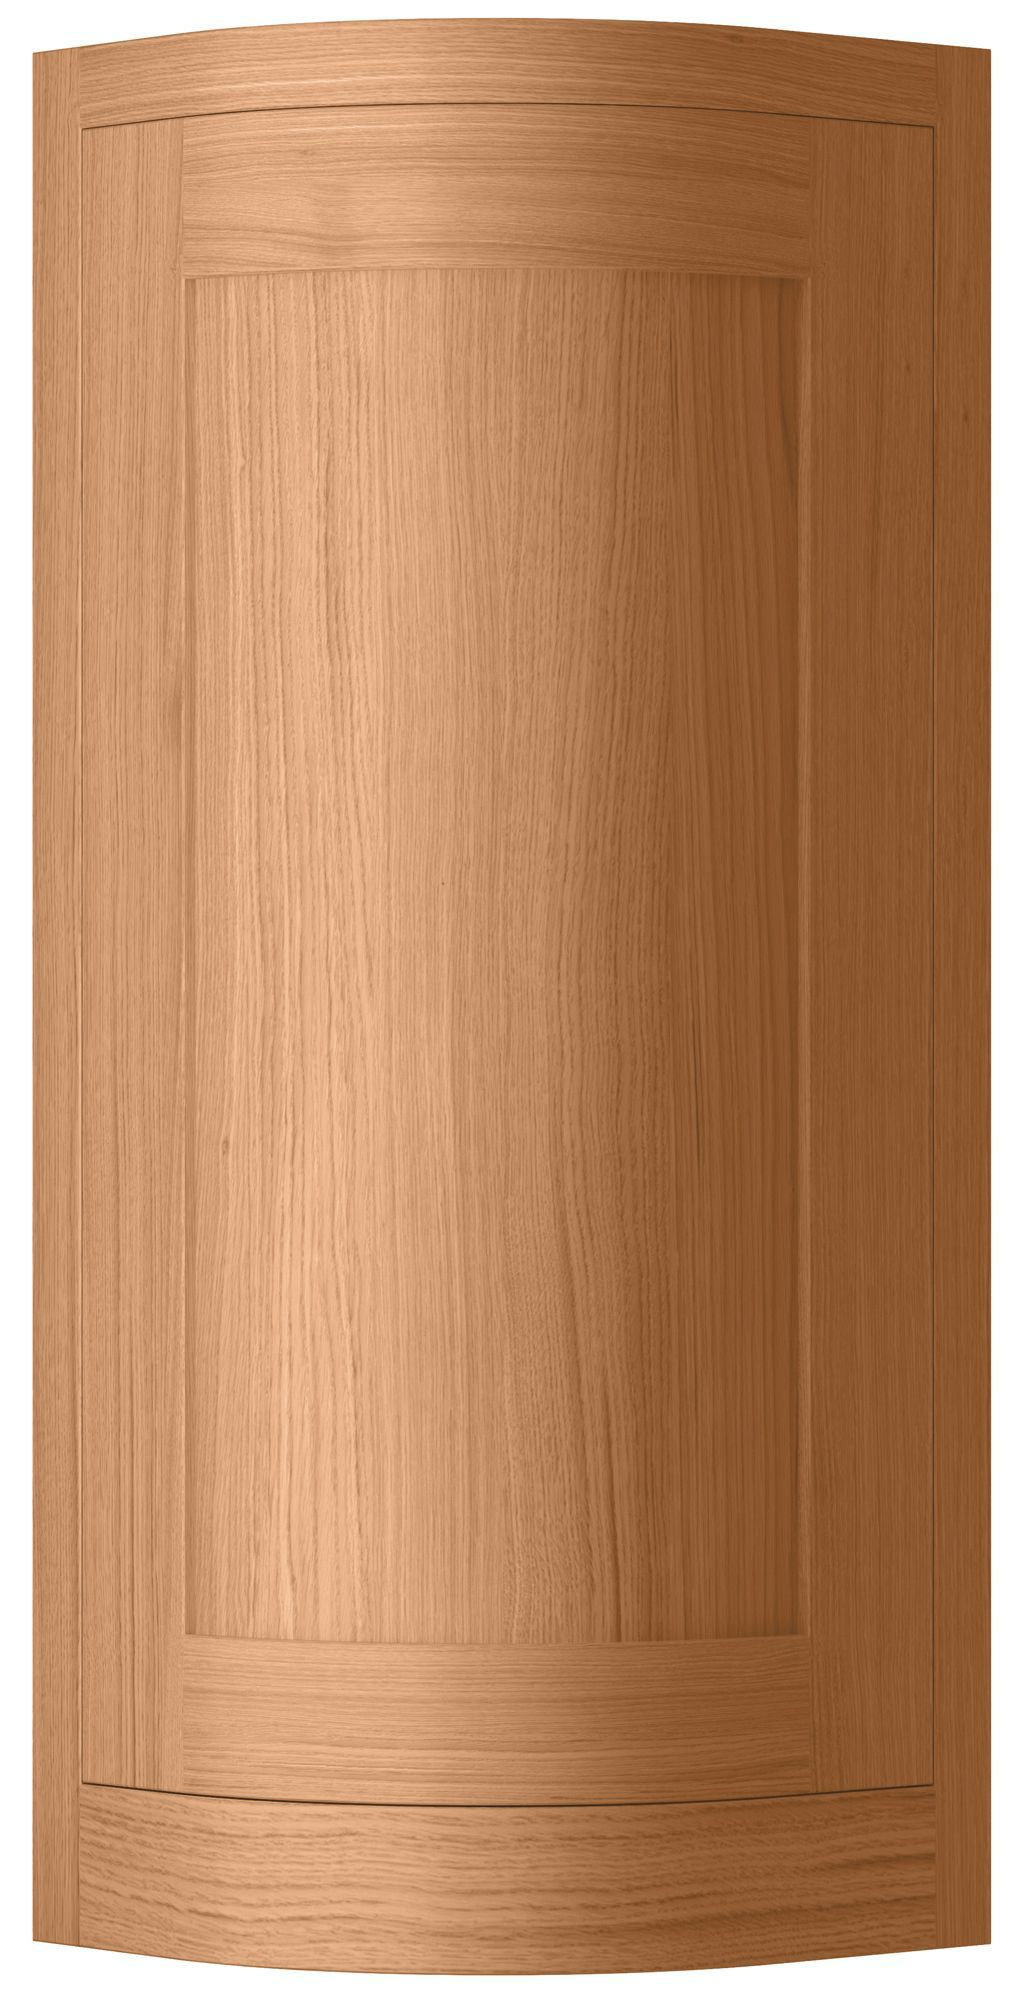 Cooke & Lewis Carisbrooke Oak Framed Tall Wall External Curved Door